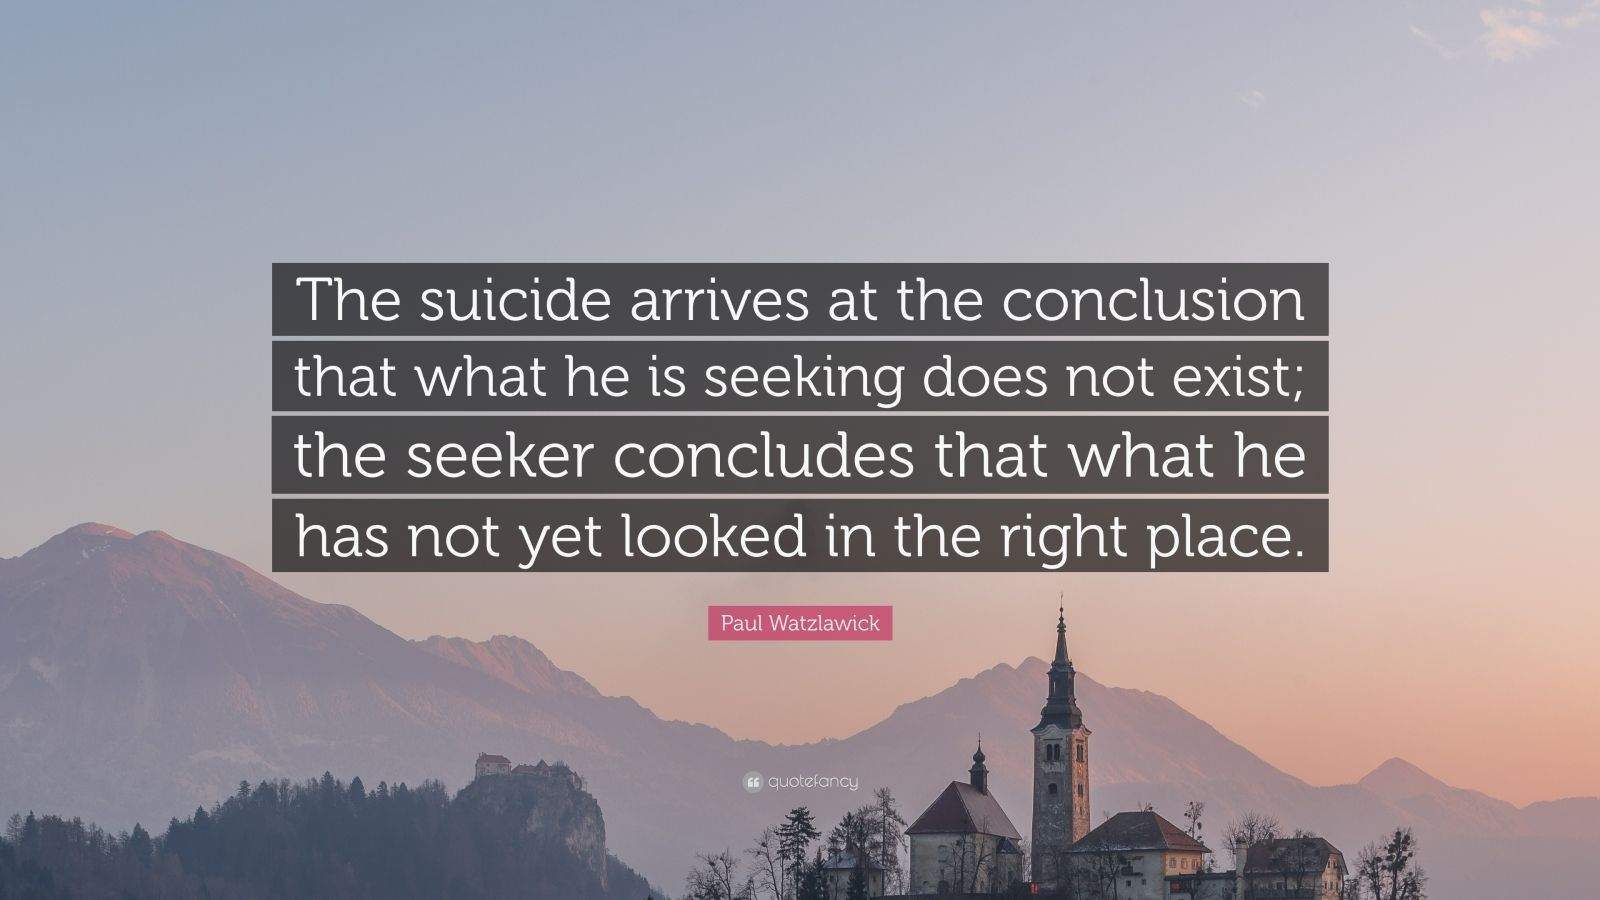 """Paul Watzlawick Quote: """"The suicide arrives at the conclusion that what he is seeking does not exist; the seeker concludes that what he has not yet looked in the right place."""""""